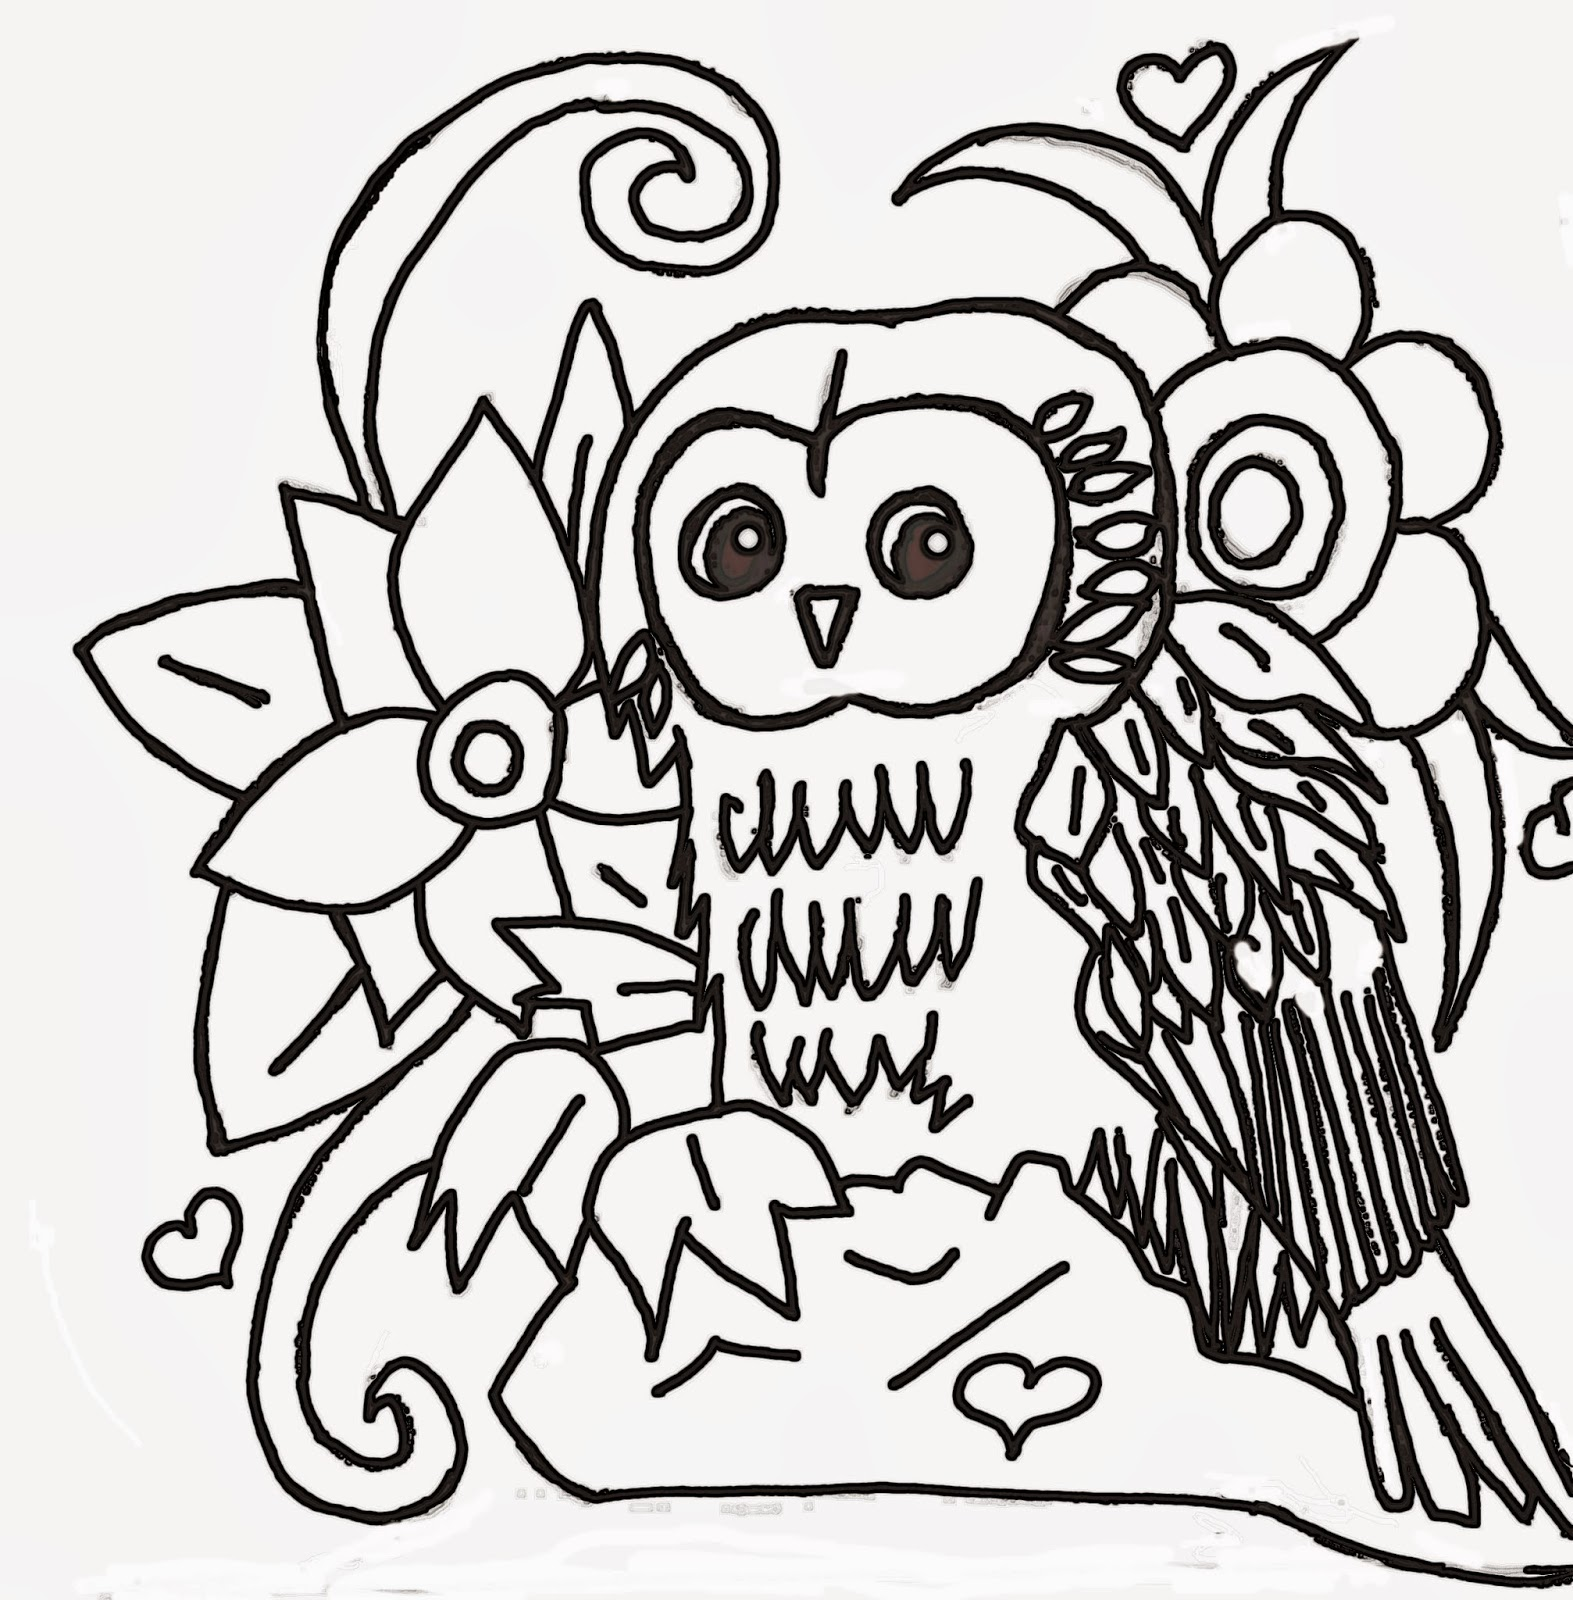 Christian Images In My Treasure Box: Home Drawn Owl In The